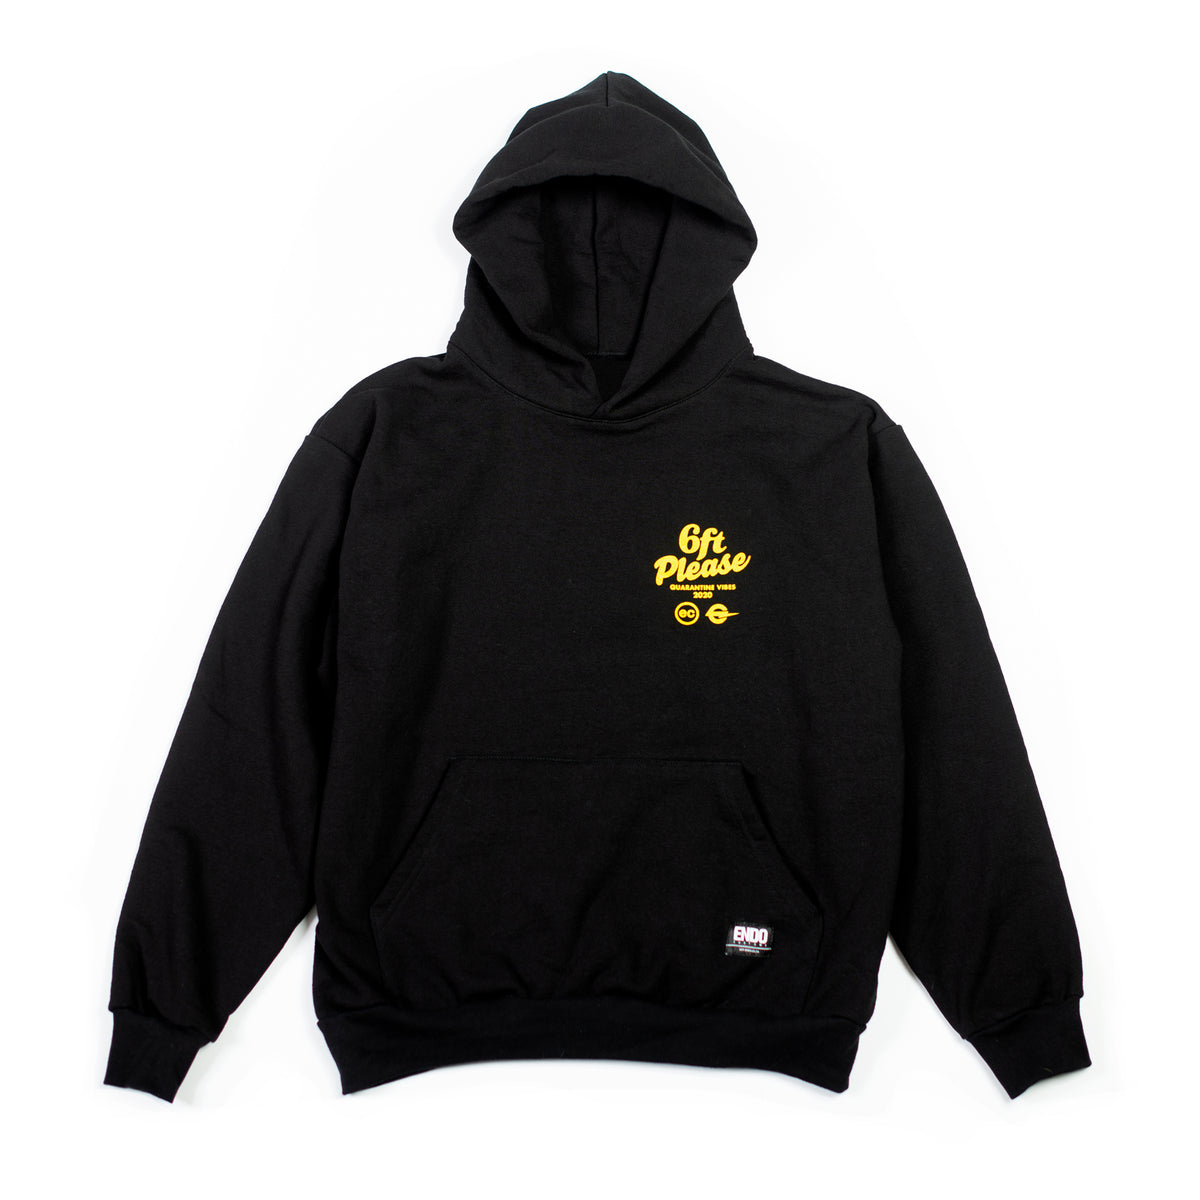 6FT PLEASE - HOODIE - BLACK